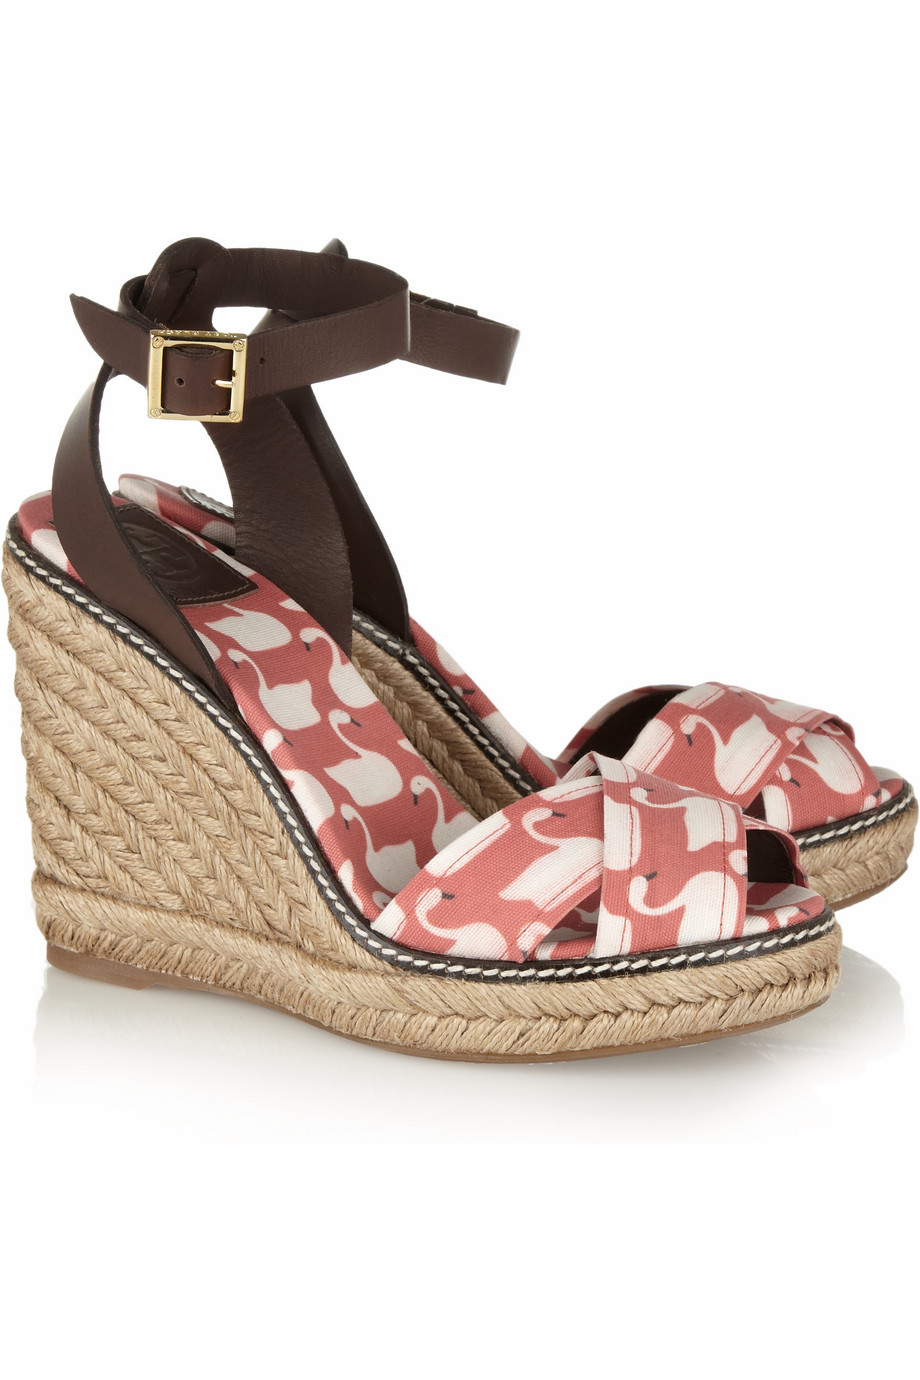 Lyst Tory Burch Printed Canvas Wedge Sandals In Red